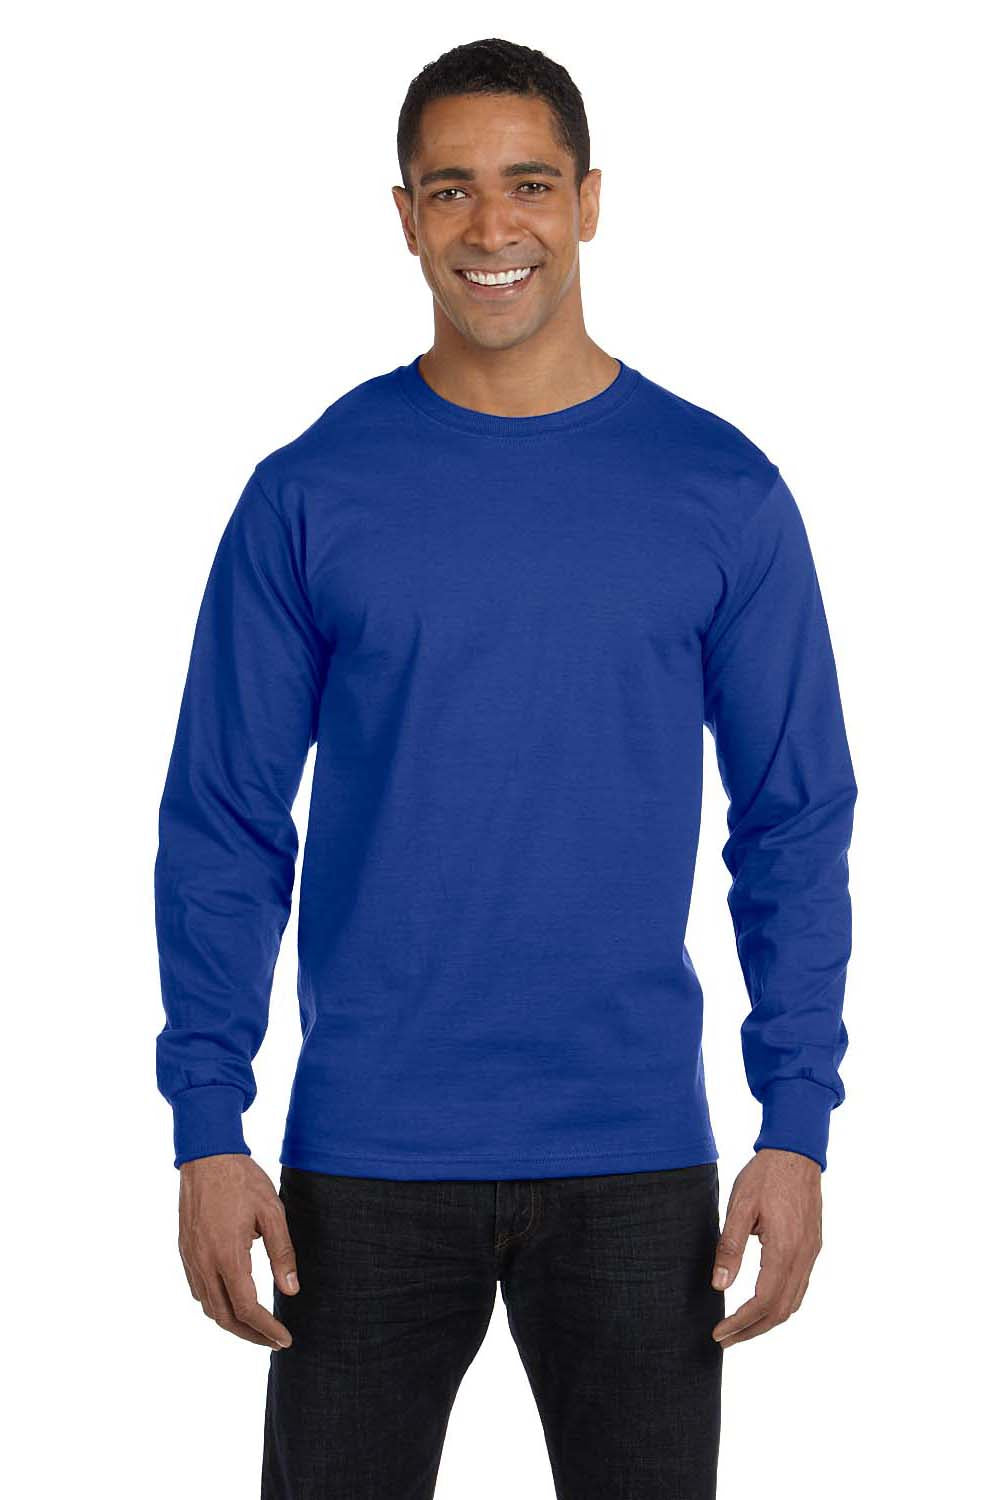 Hanes 5186 Mens Beefy-T Long Sleeve Crewneck T-Shirt Royal Blue Front